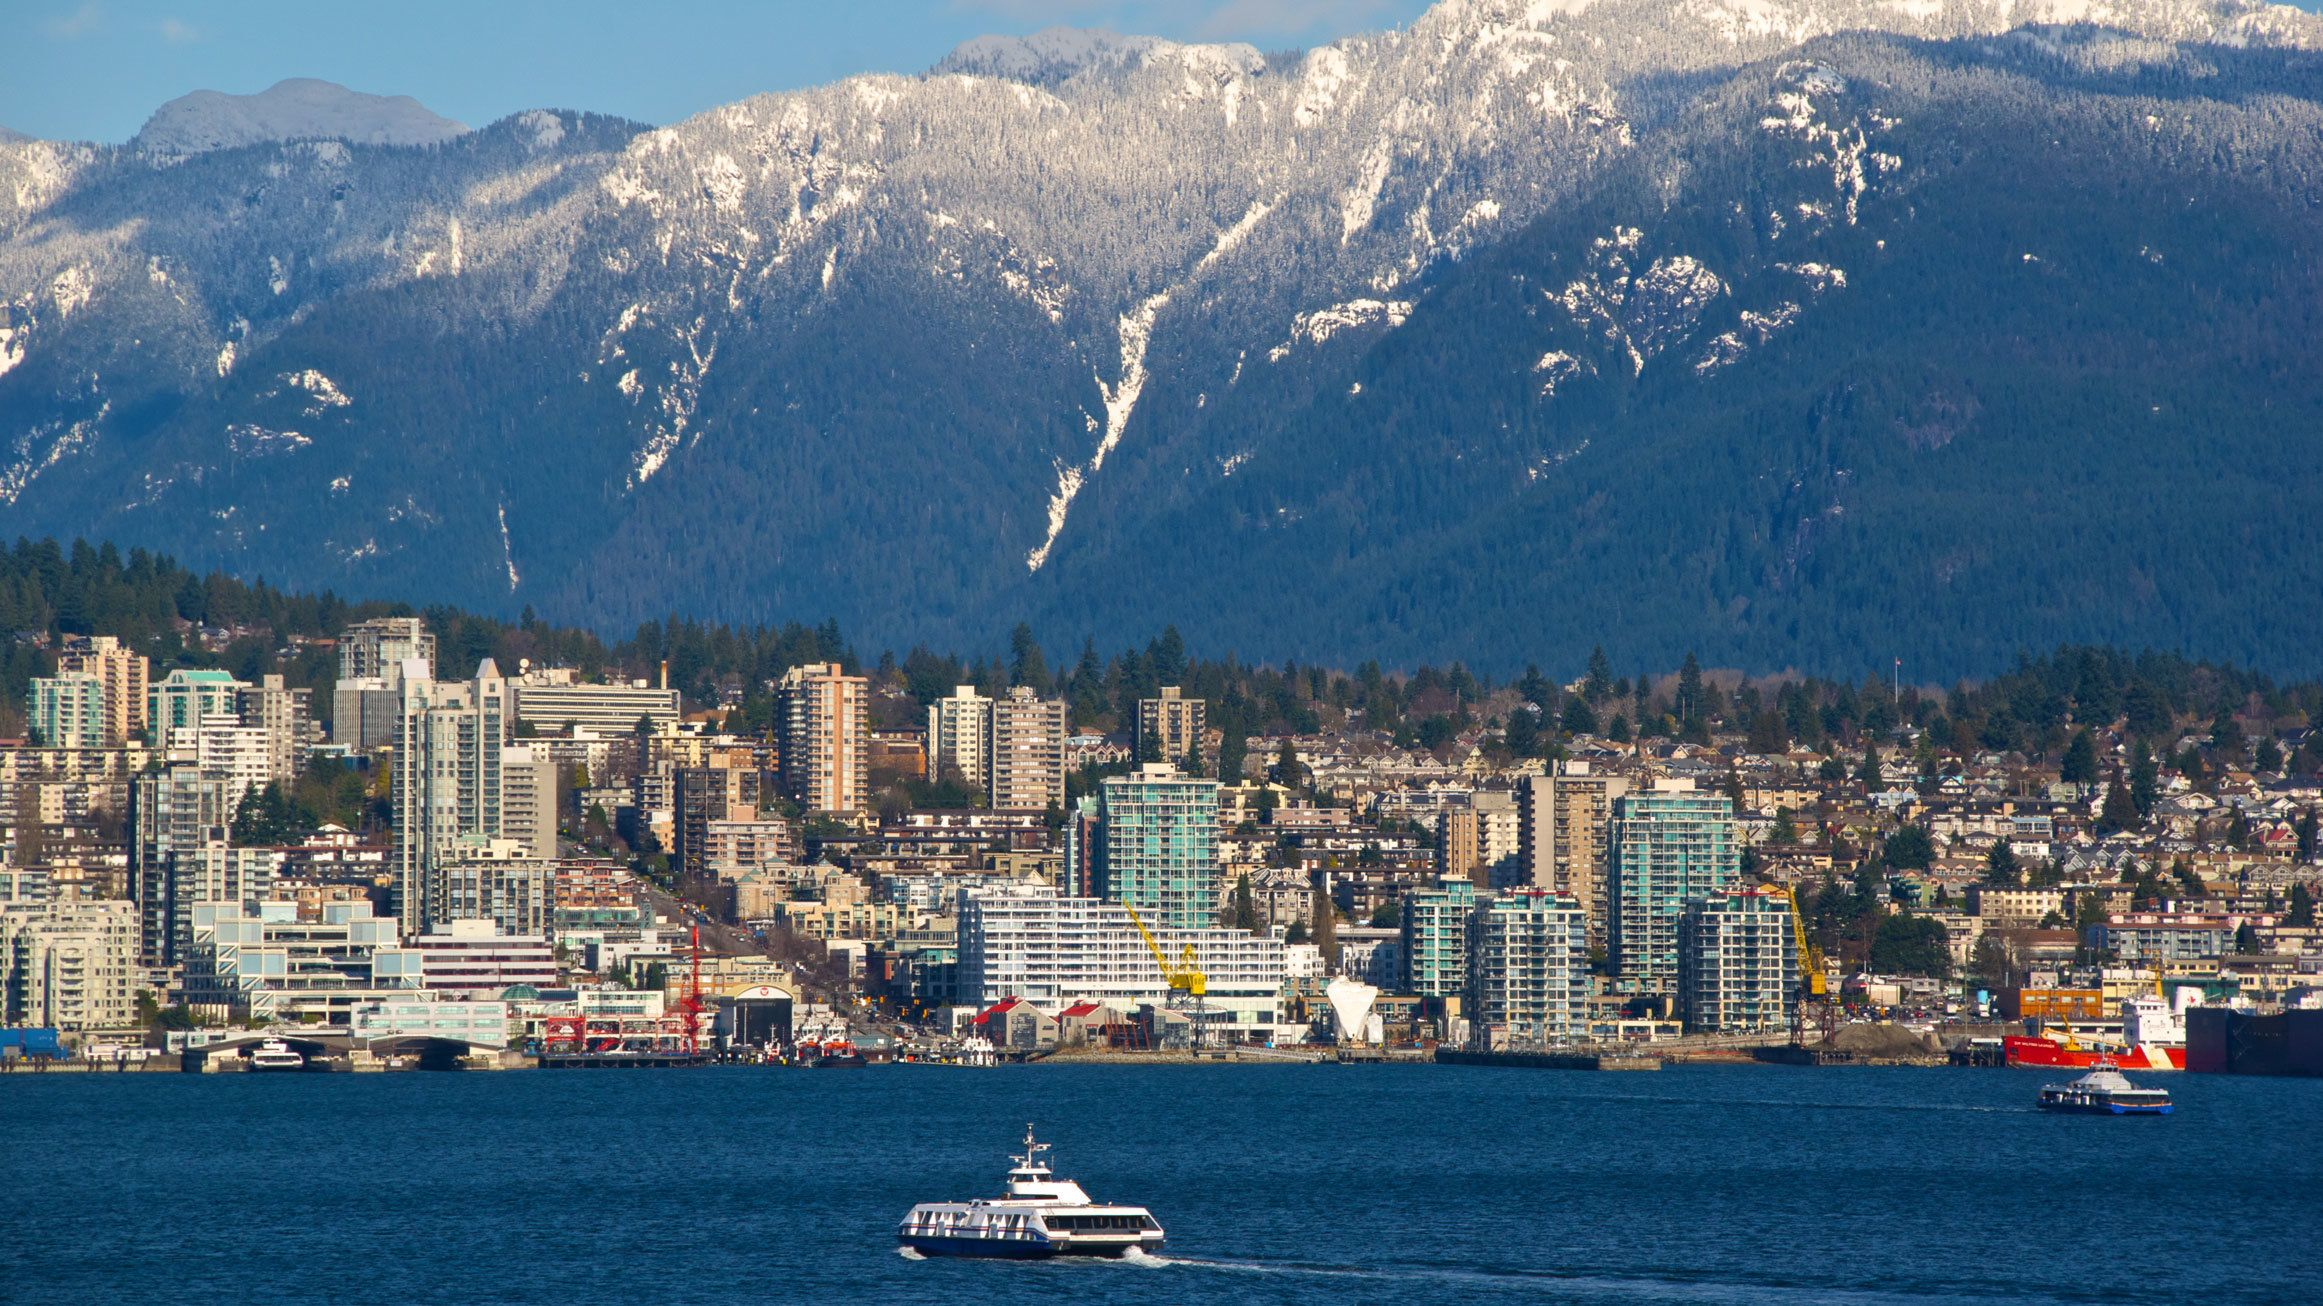 Water, city and mountains in Vancouver